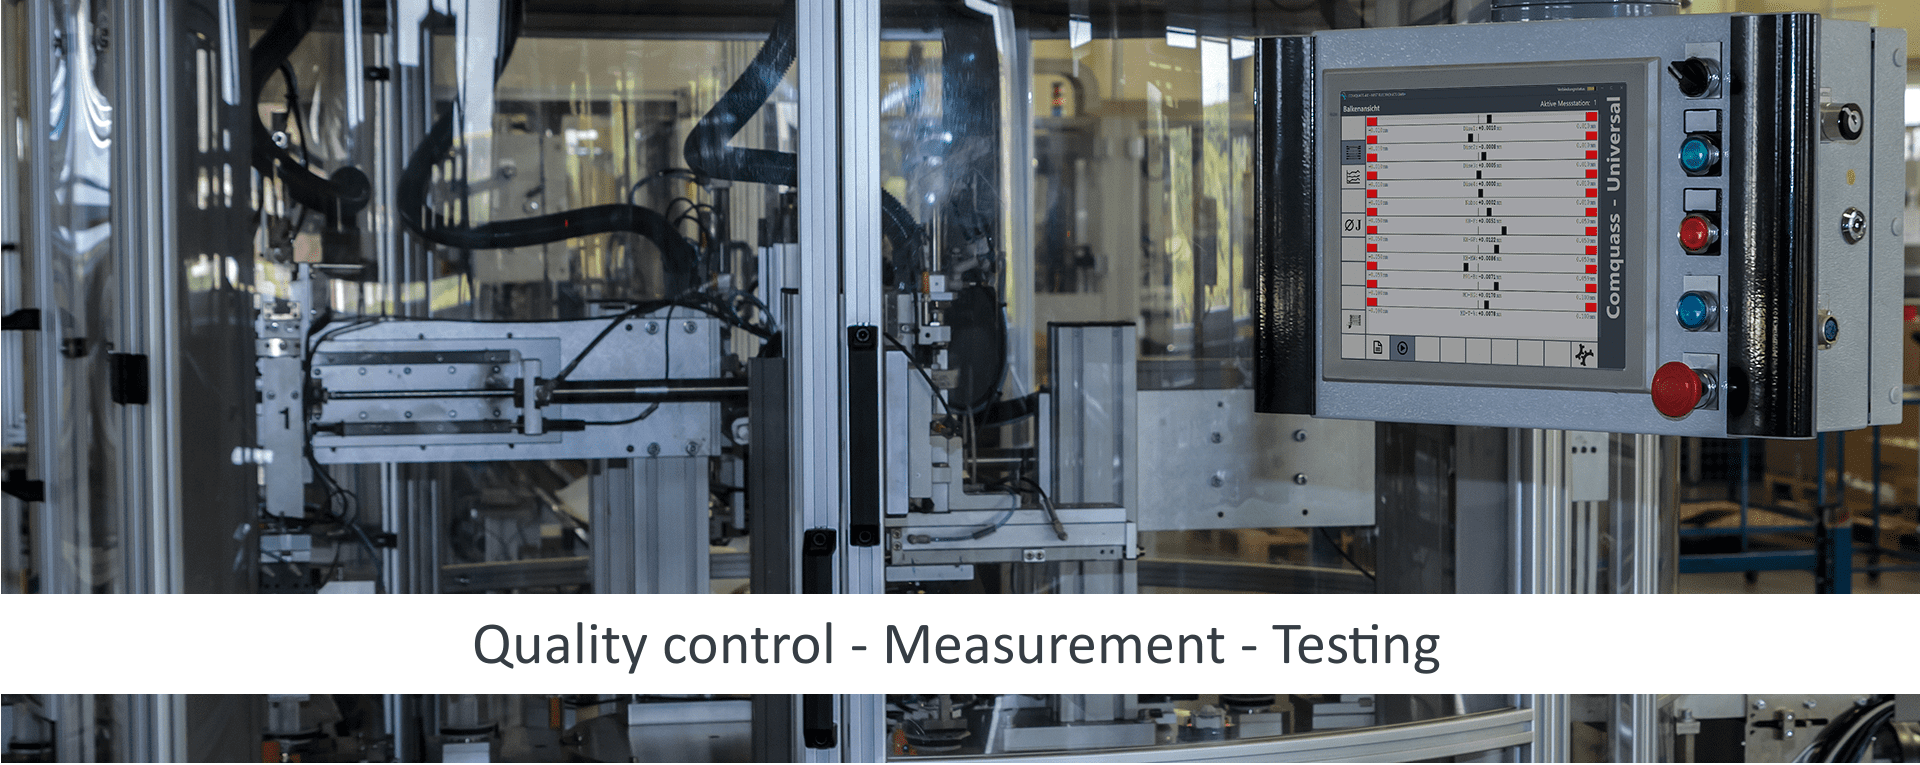 industrial quality assurance (QA) for measuring and testing tasks from manual measuring stations to fully automatic measuring stations